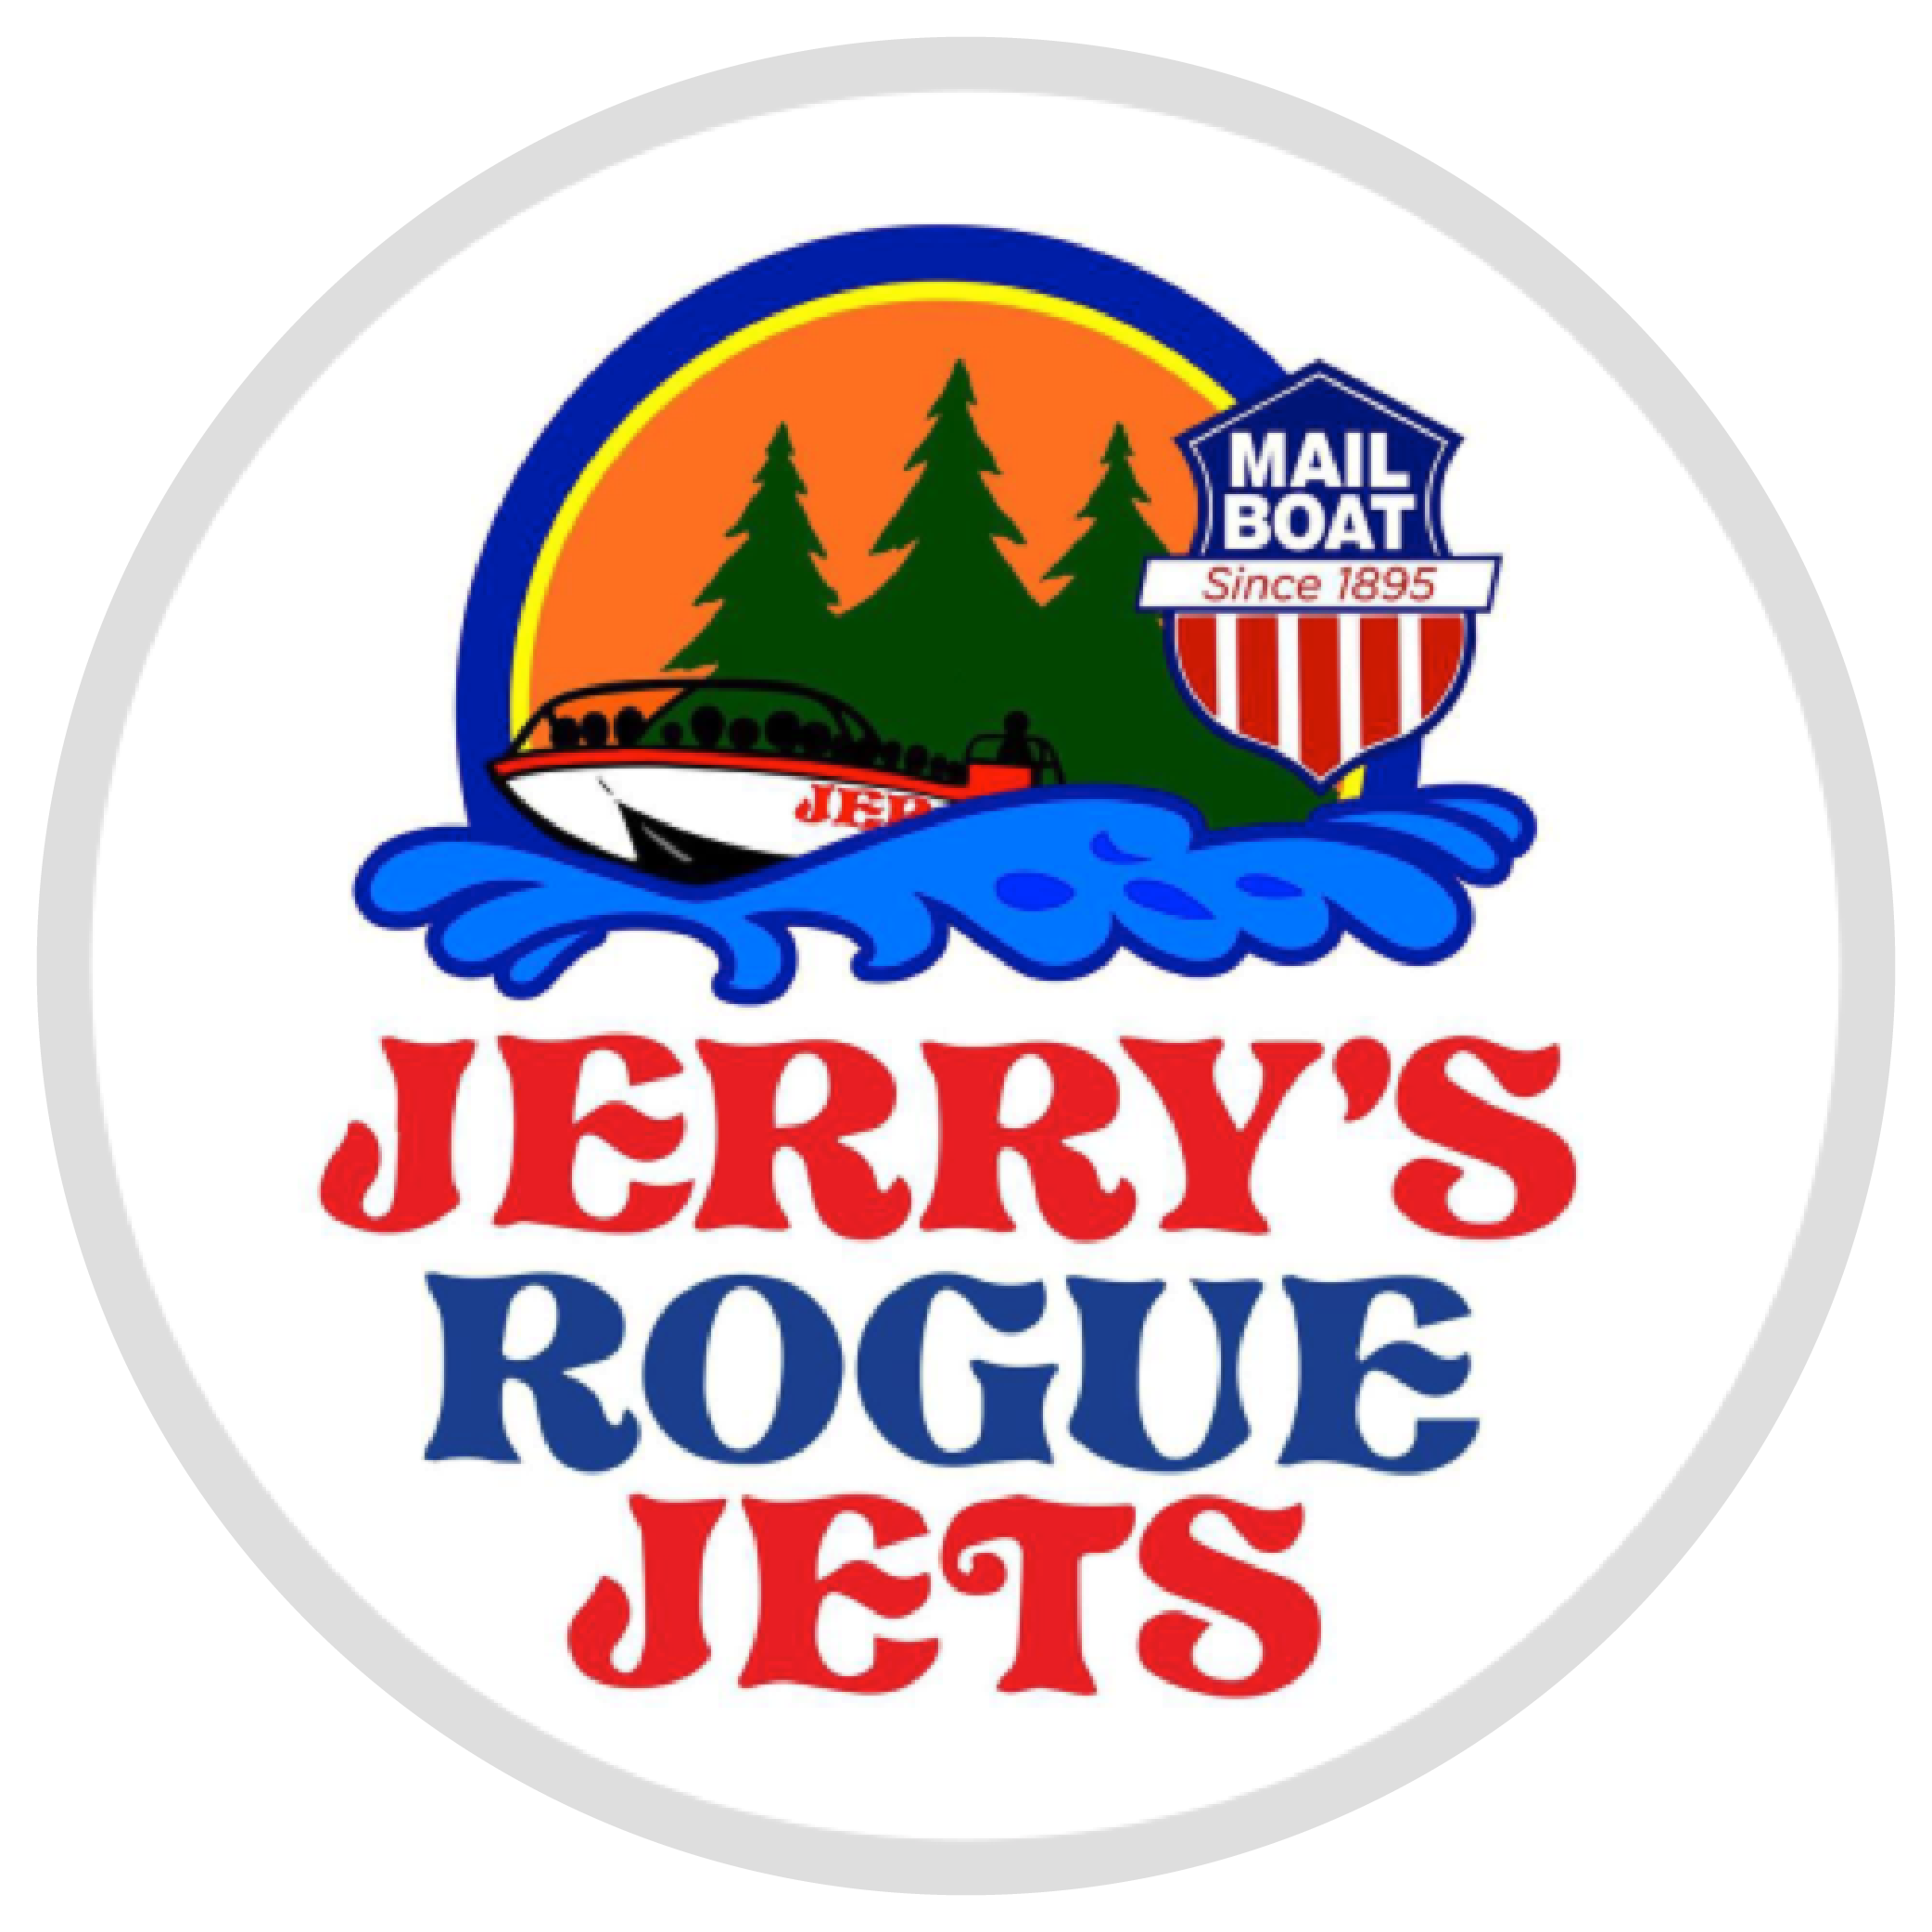 Jerry's Rogue Jet Boats